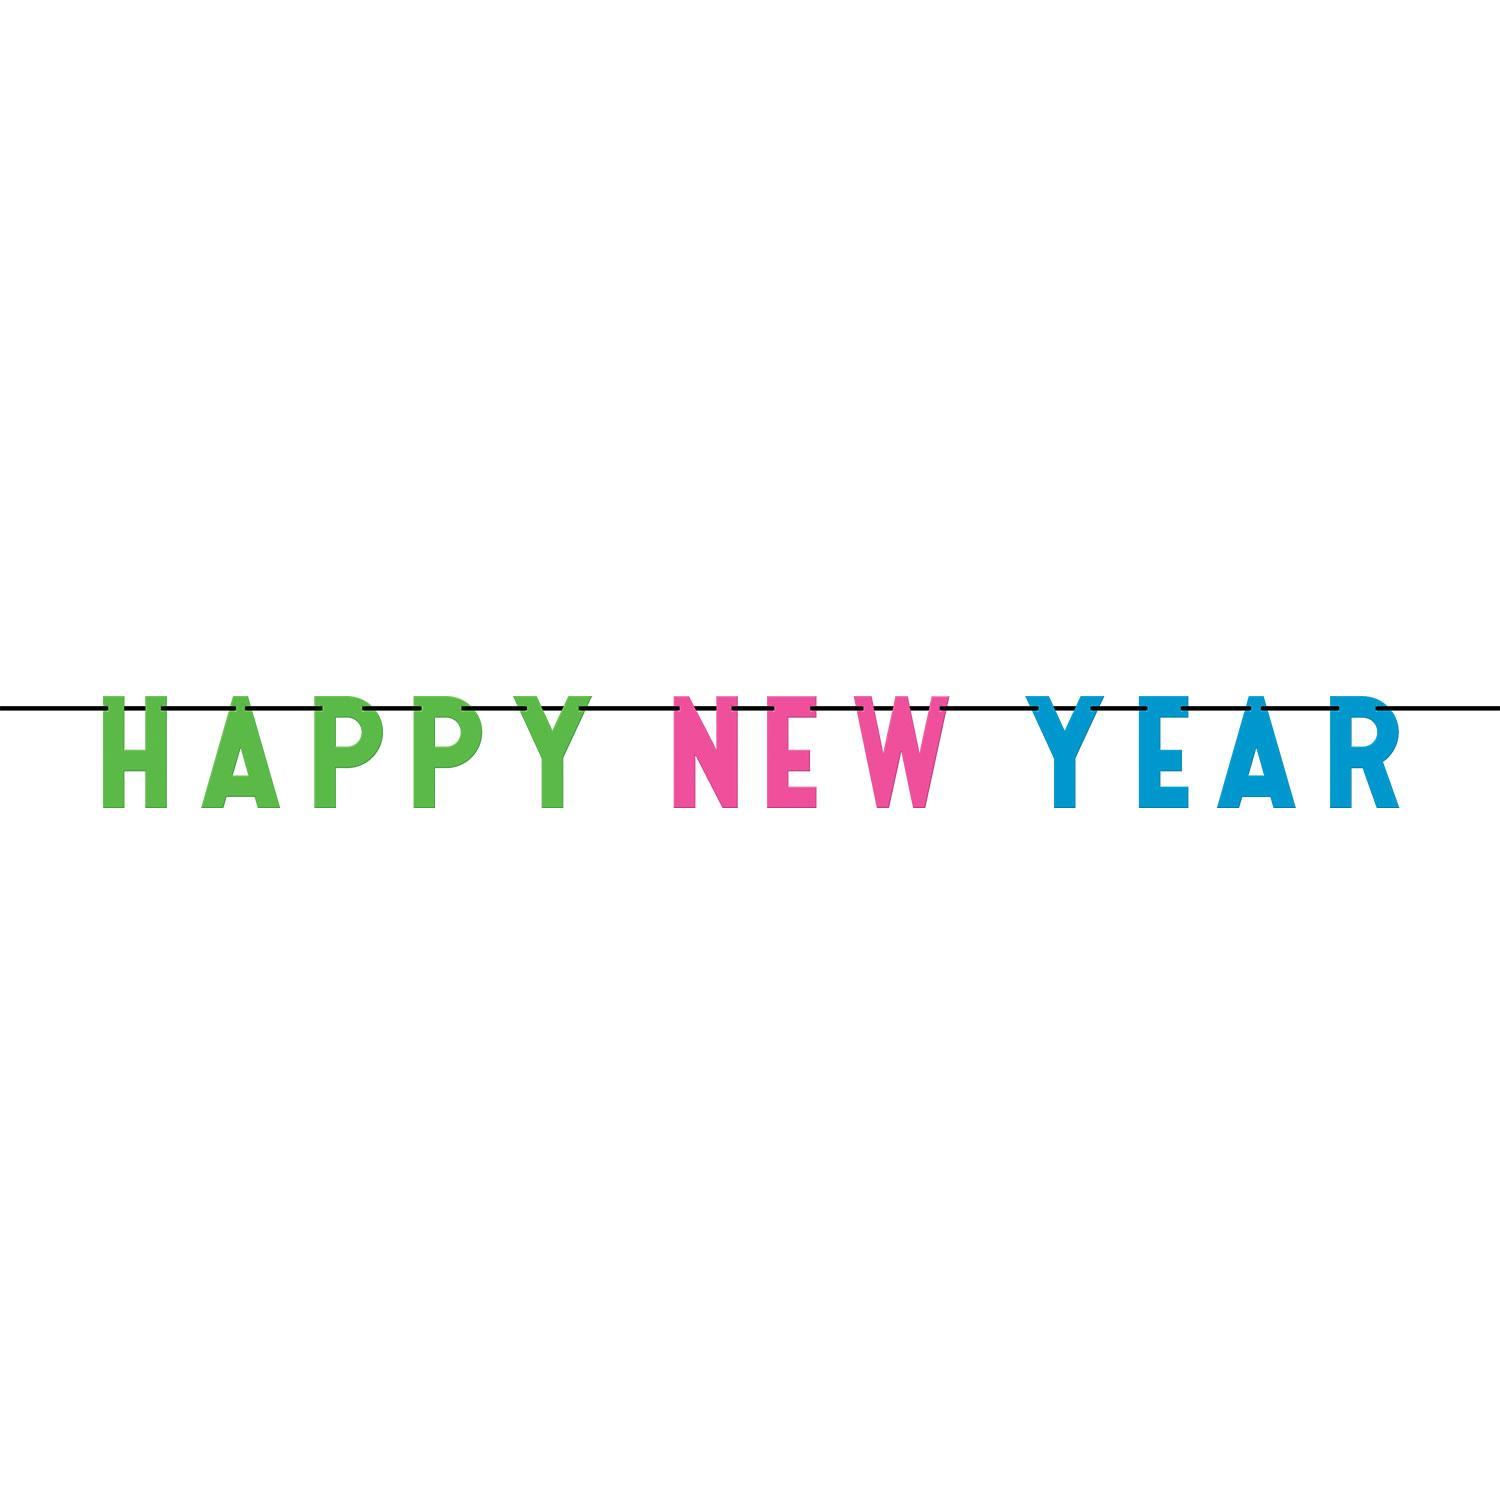 Happy New Year Letter Banner Colourful